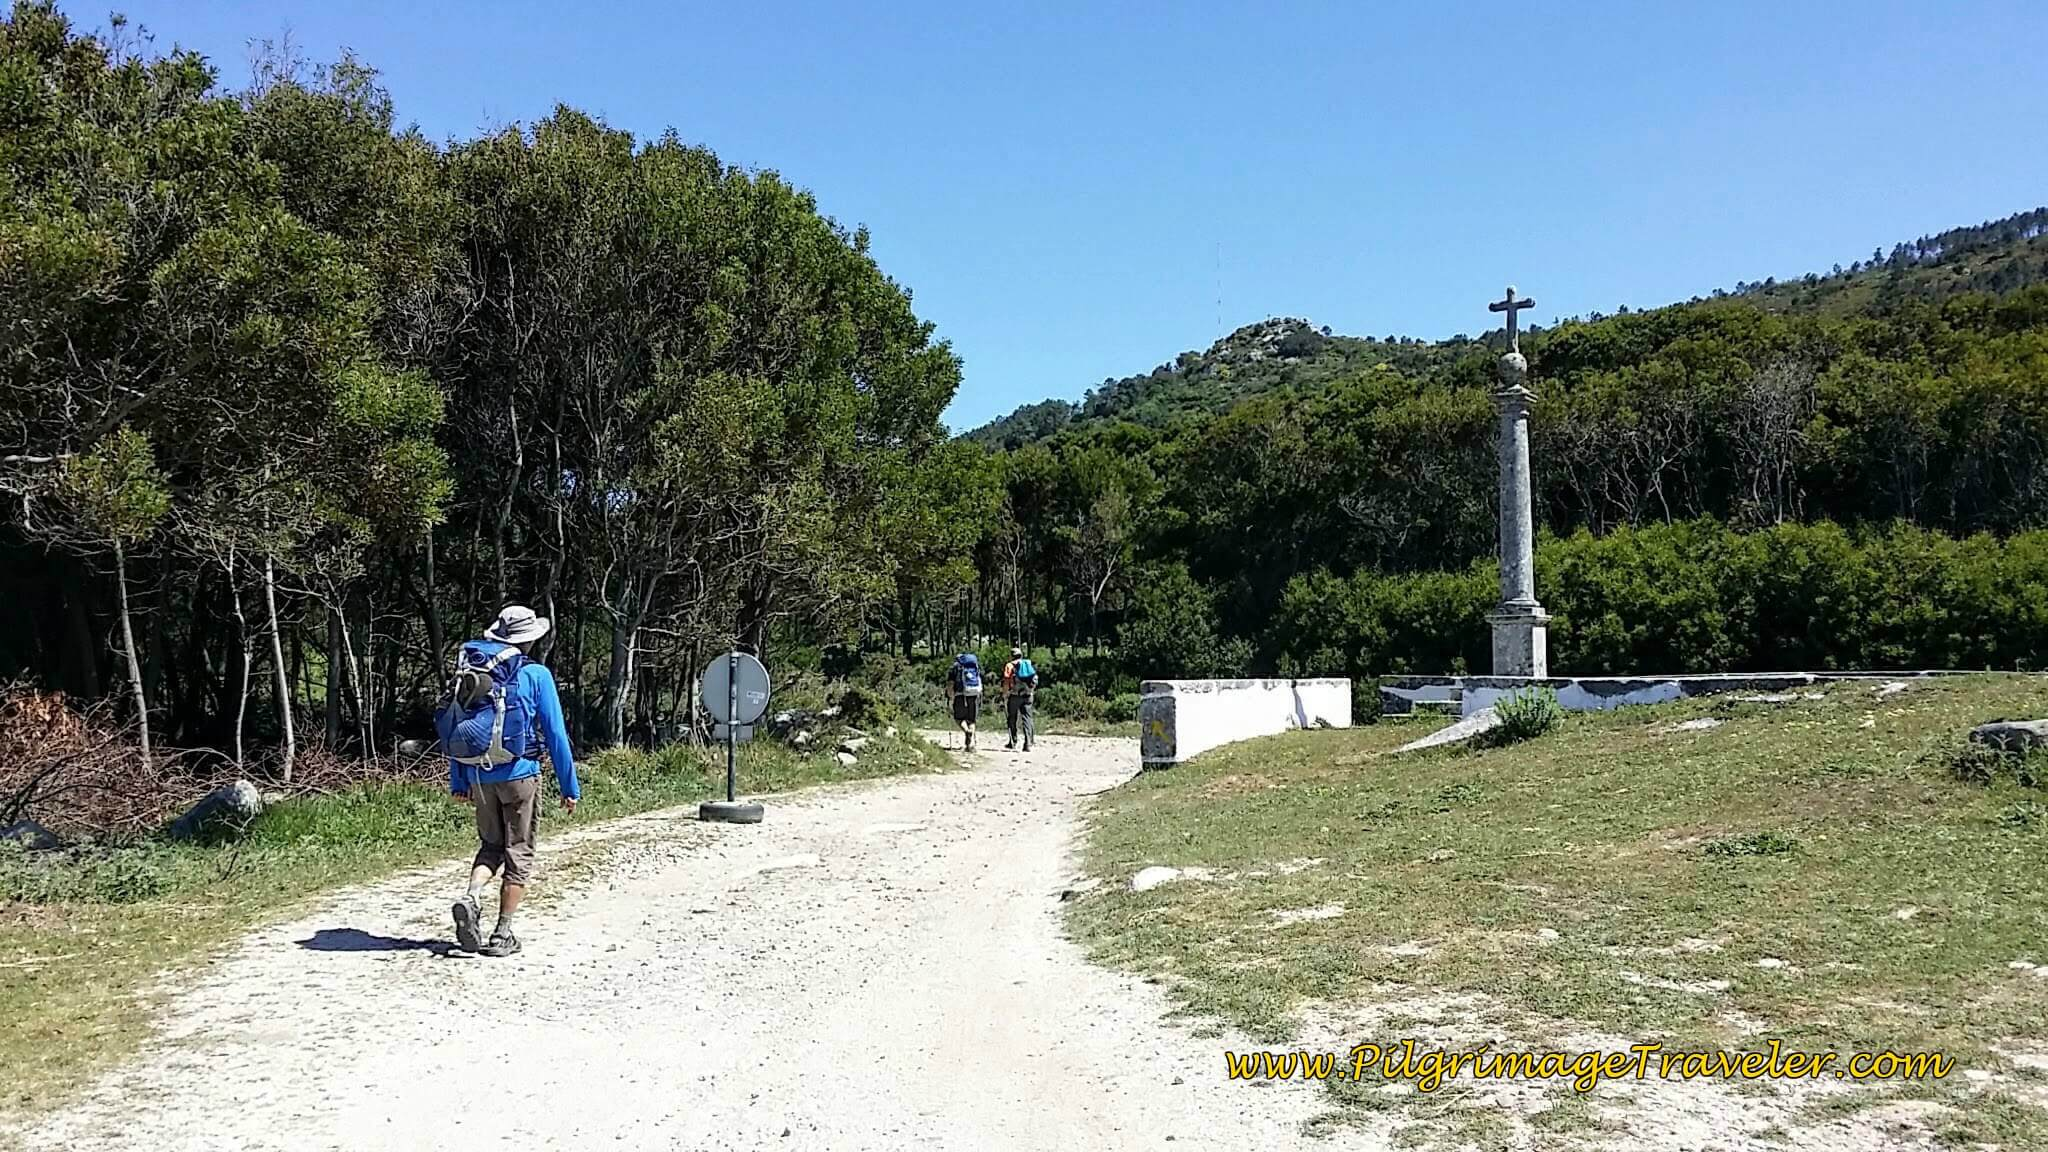 Join Railroad Tracks at Cruzeiro de Santo Isidoro on day eighteen of the Camino Portugués on the Coastal Route